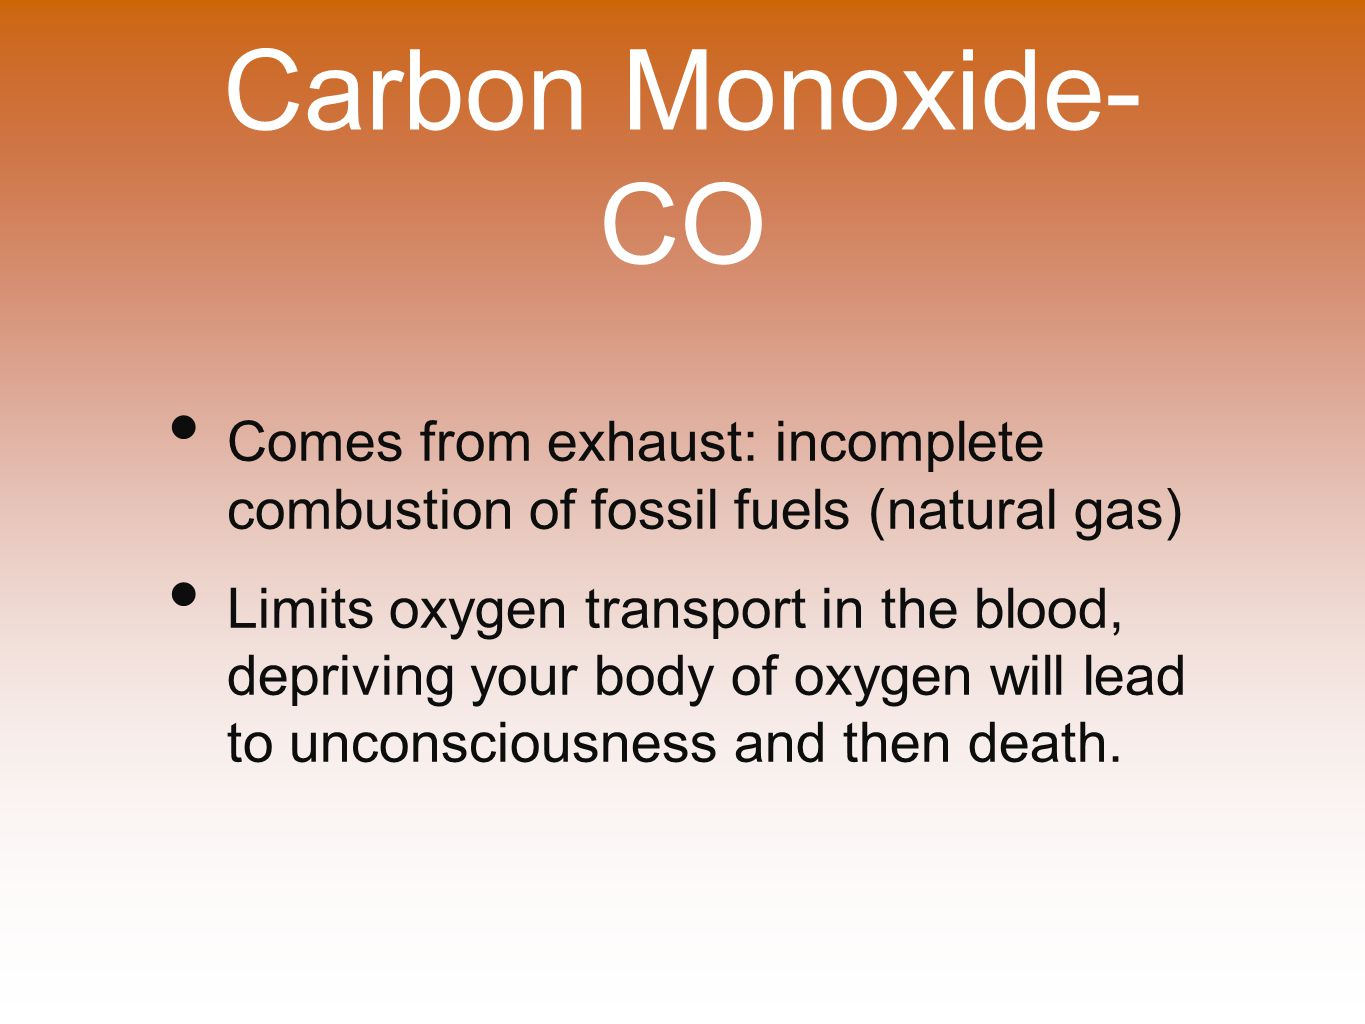 Carbon Monoxide- CO Comes from exhaust: incomplete combustion of fossil fuels (natural gas) Limits oxygen transport in the blood, depriving your body